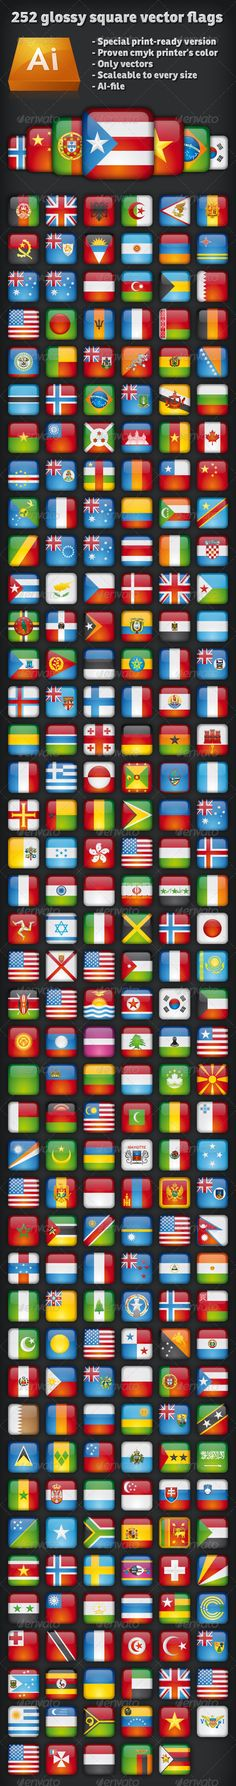 Ultimate 252 glossy square vector flags